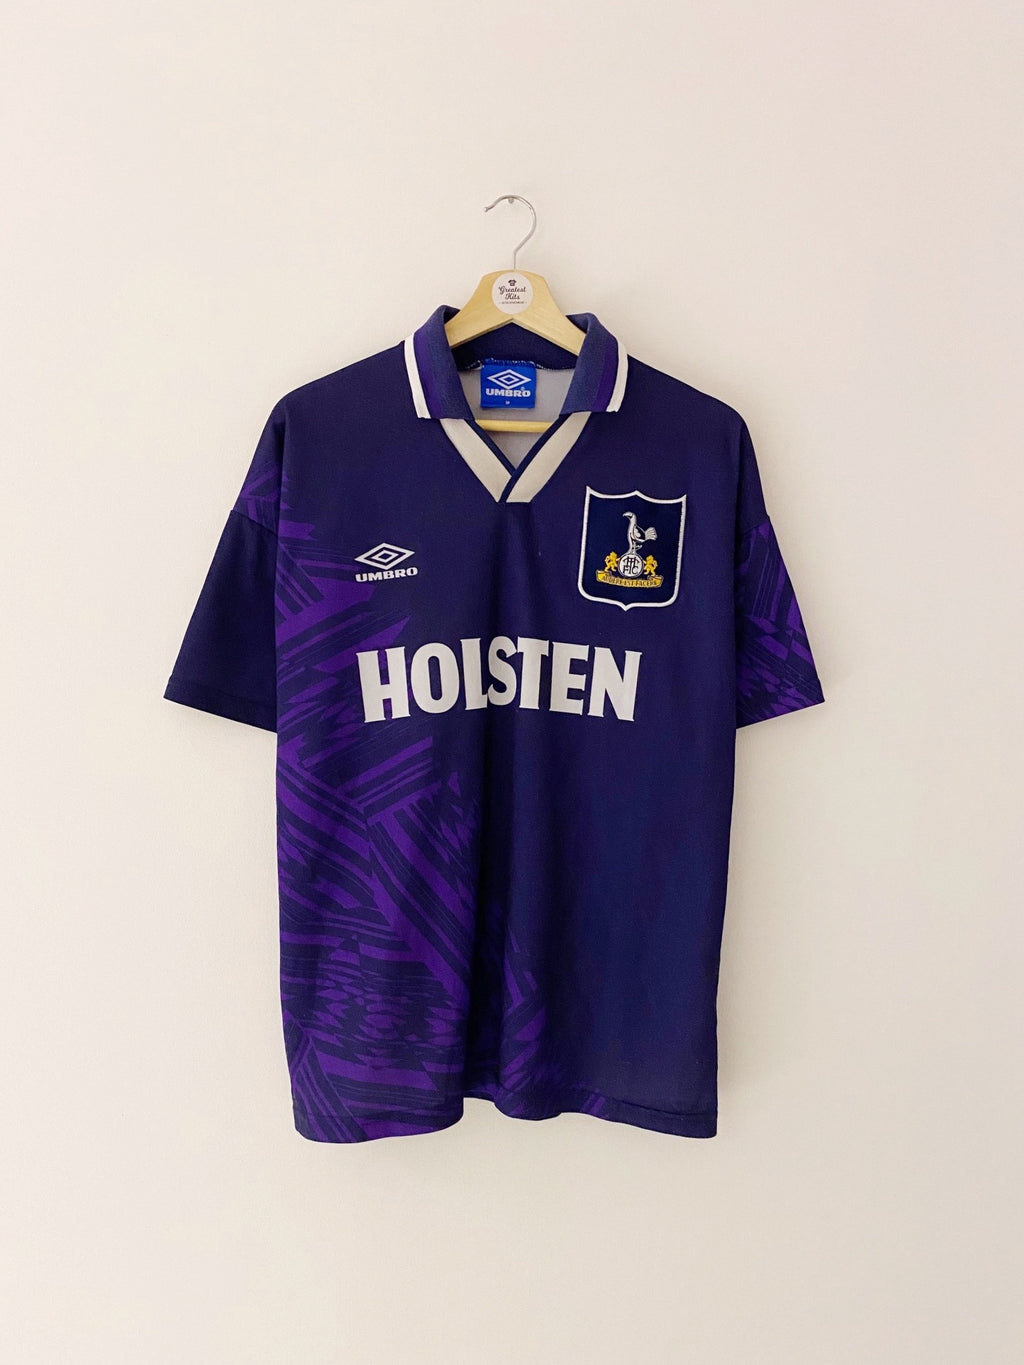 1994/95 Tottenham Hotspur Away Shirt (M) 7.5/10